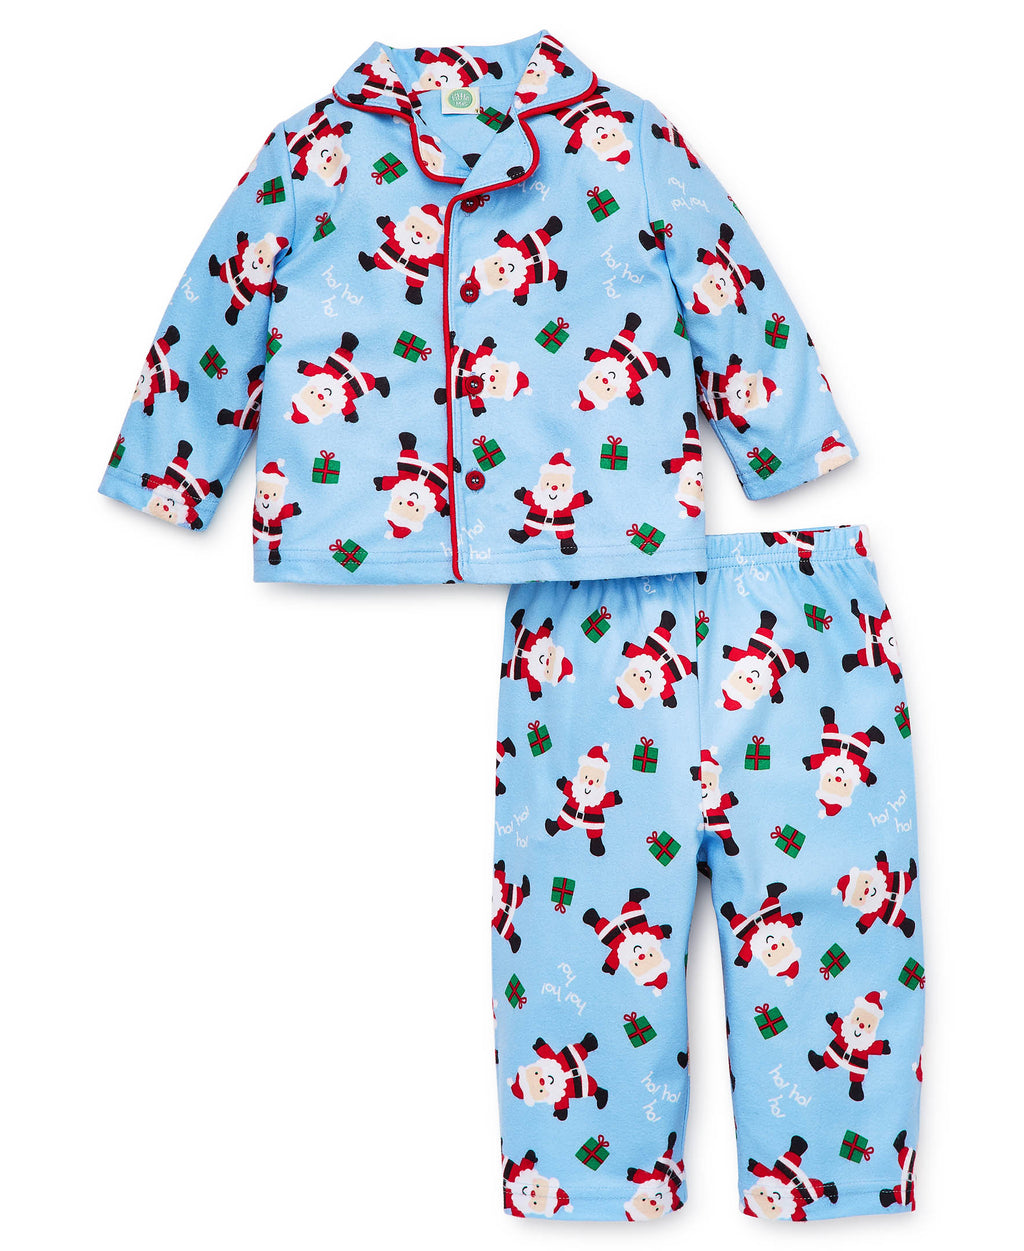 Blue Holiday Toddler Pajama Set